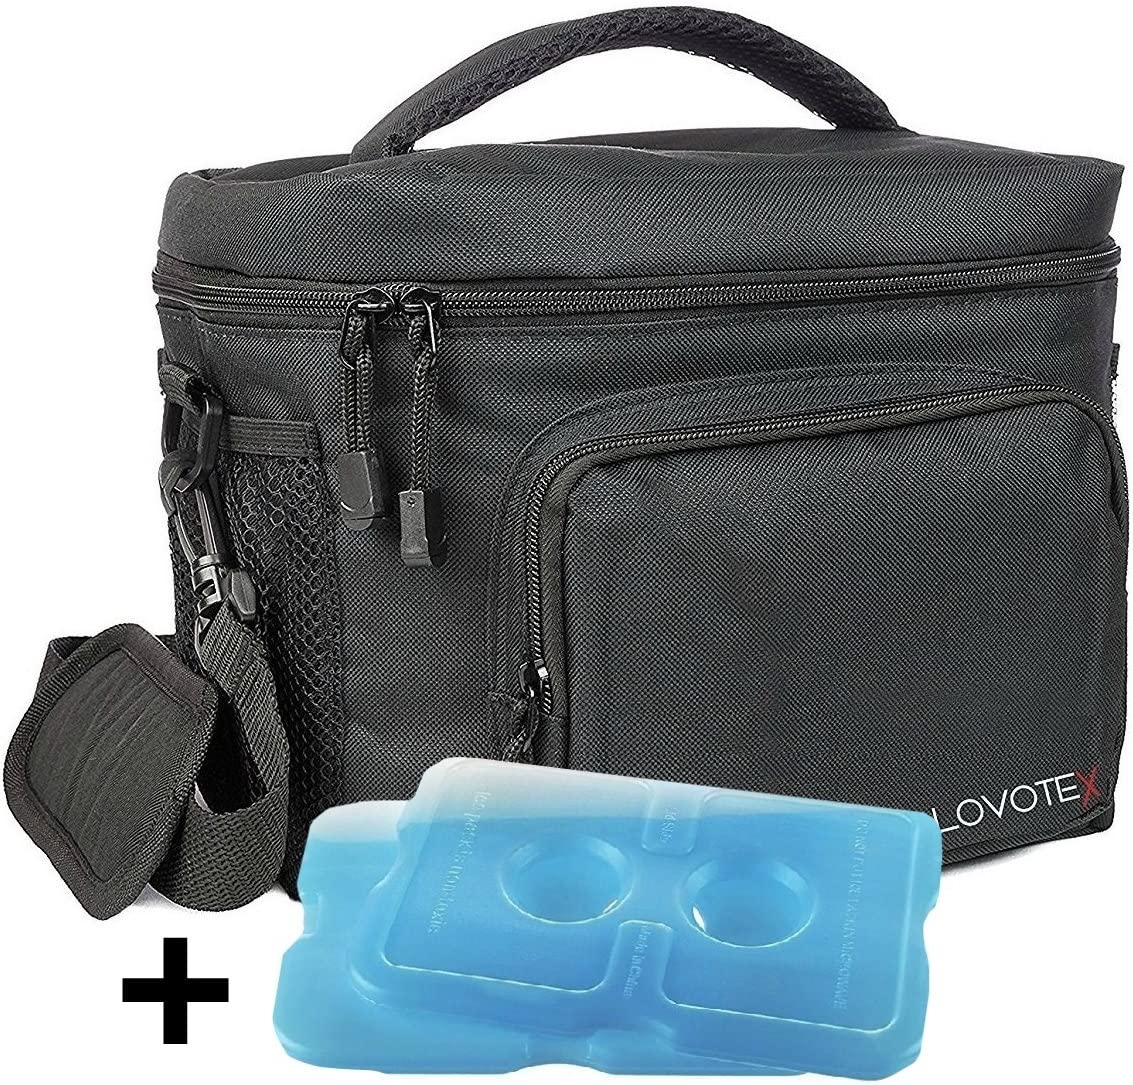 2X Large Insulated Lunch Bag Cooler Tote With 2 Reusable Cooler Ice Packs Easy Pull Zippers, Detachable Shoulder Strap, Roomy Compartments For Lunch Box, Bottles, Containers, Travel, Camping & More